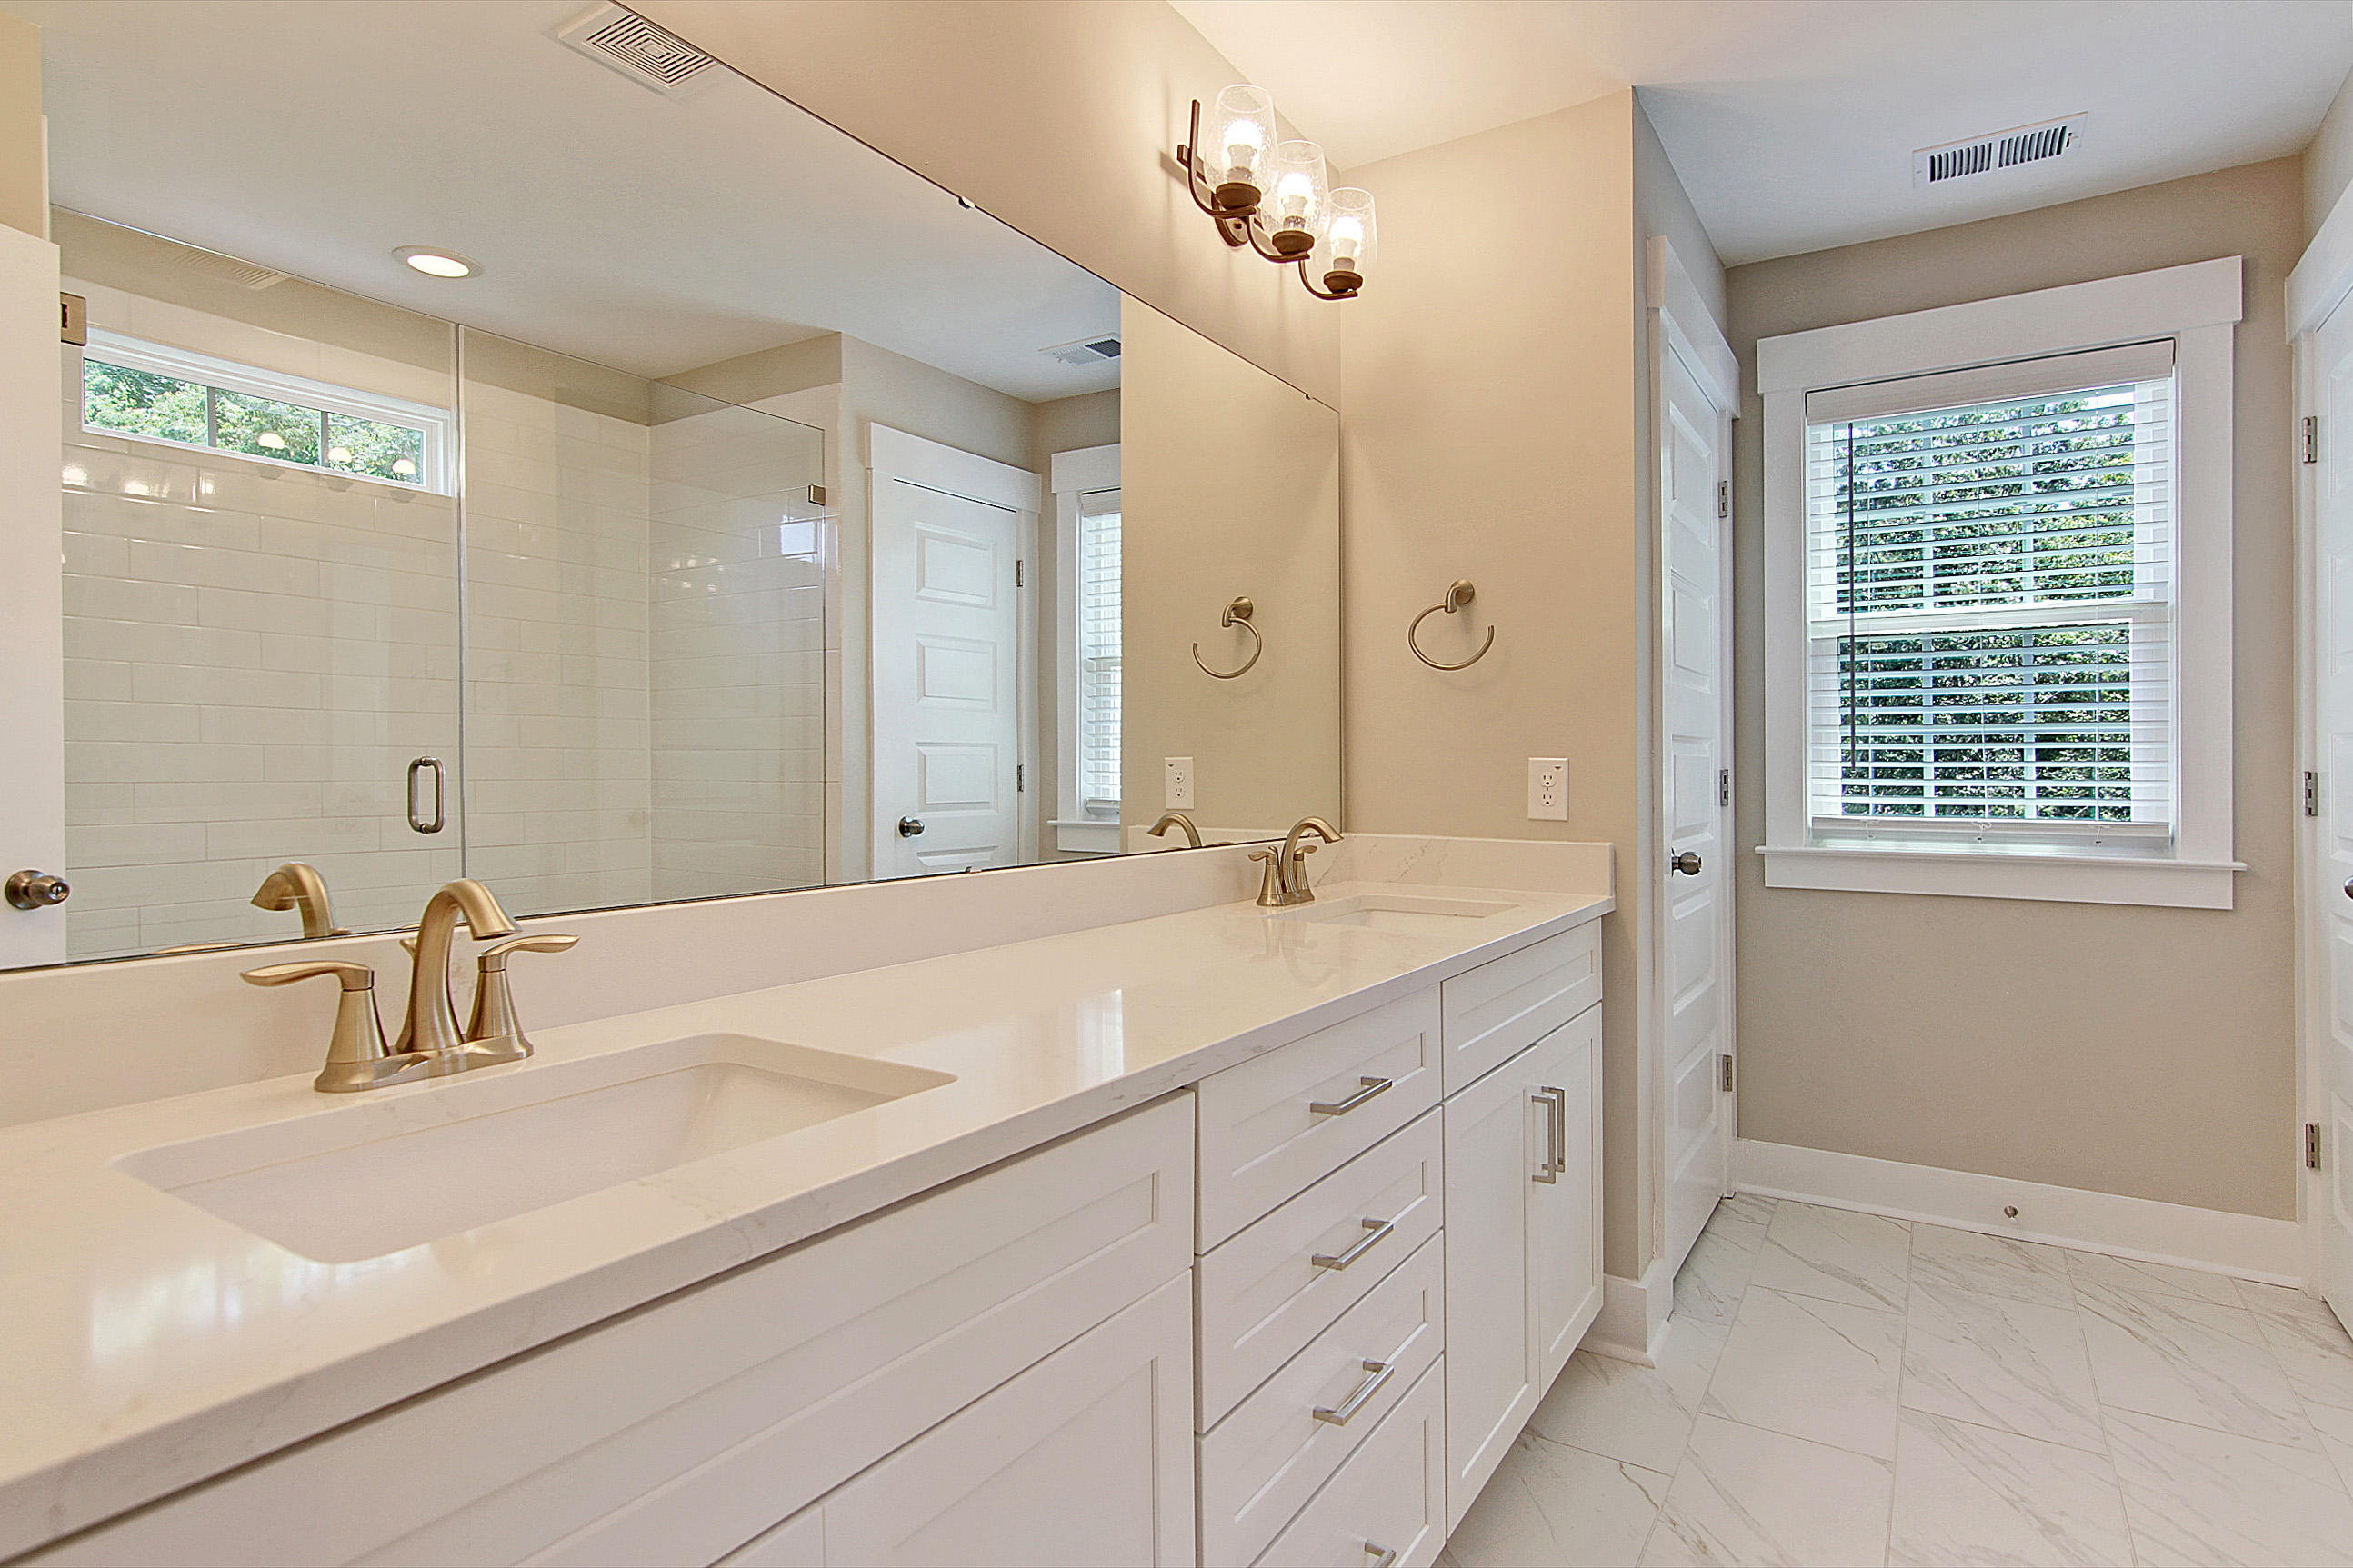 Wando Forest Homes For Sale - 3705 Sandy Gate Ln, Mount Pleasant, SC - 45